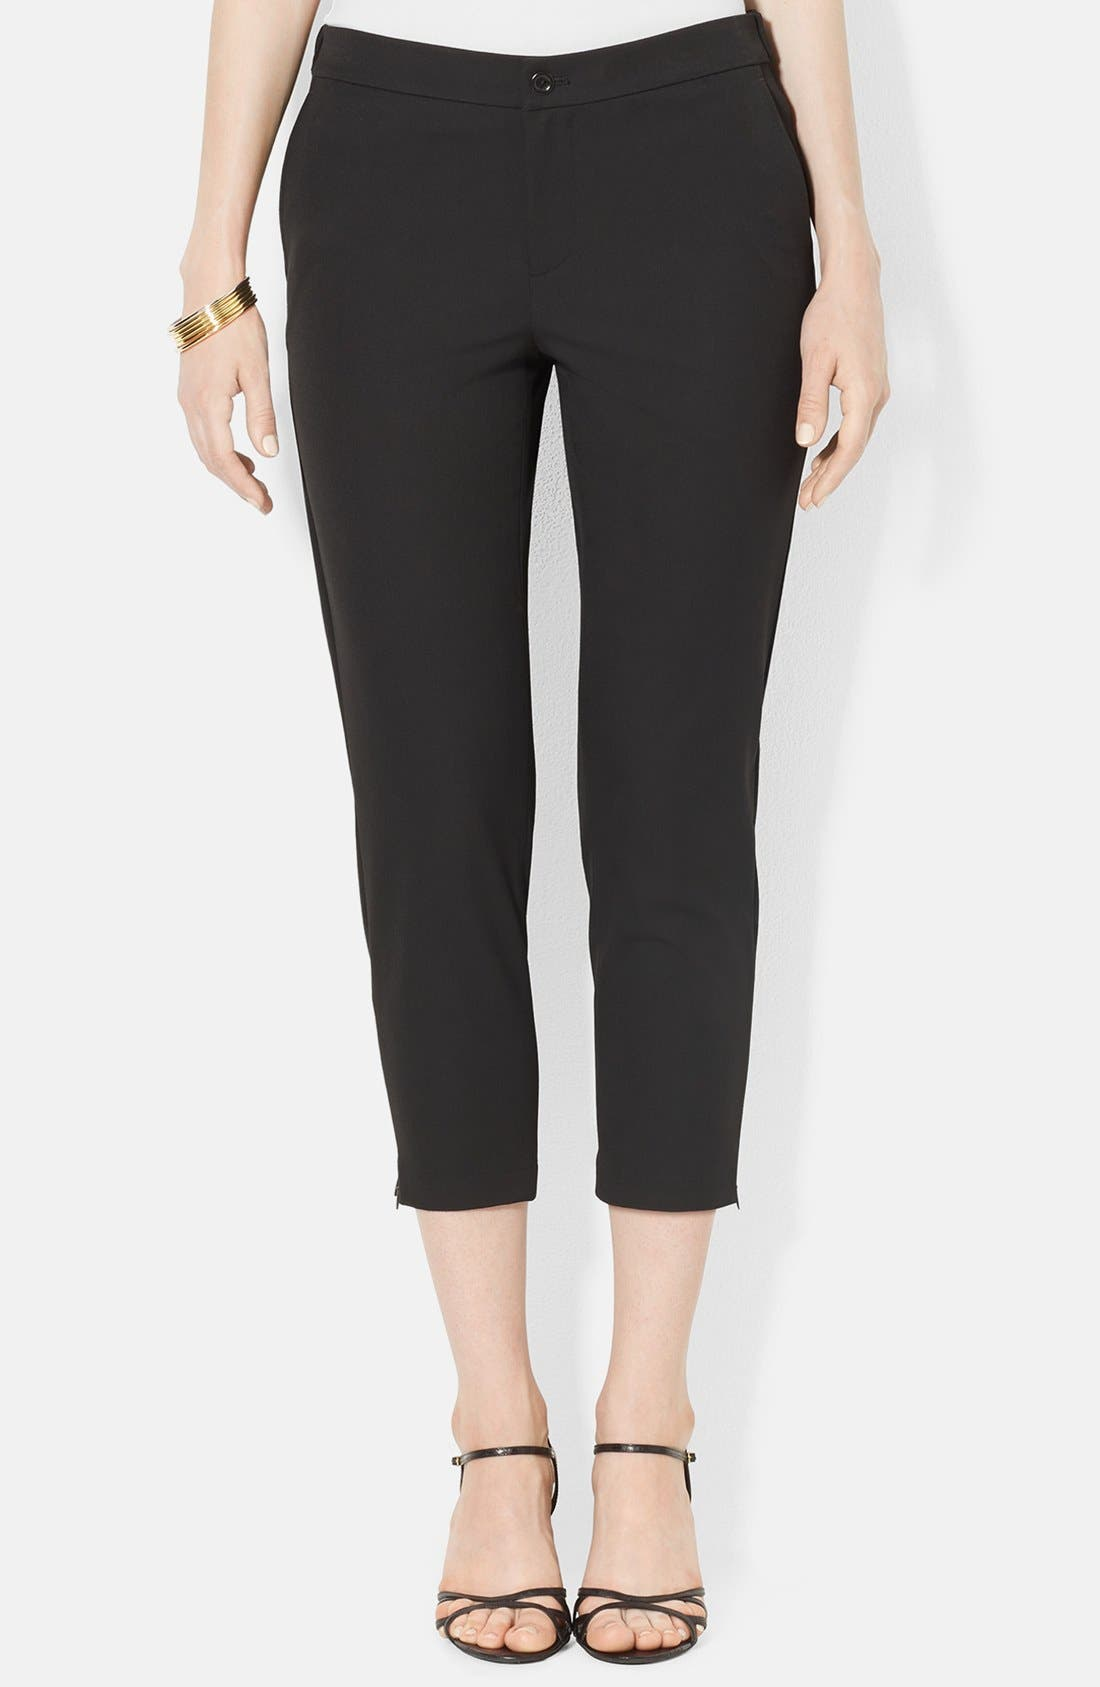 Alternate Image 1 Selected - Lauren Ralph Lauren Stretch Crop Skinny Pants (Petite)